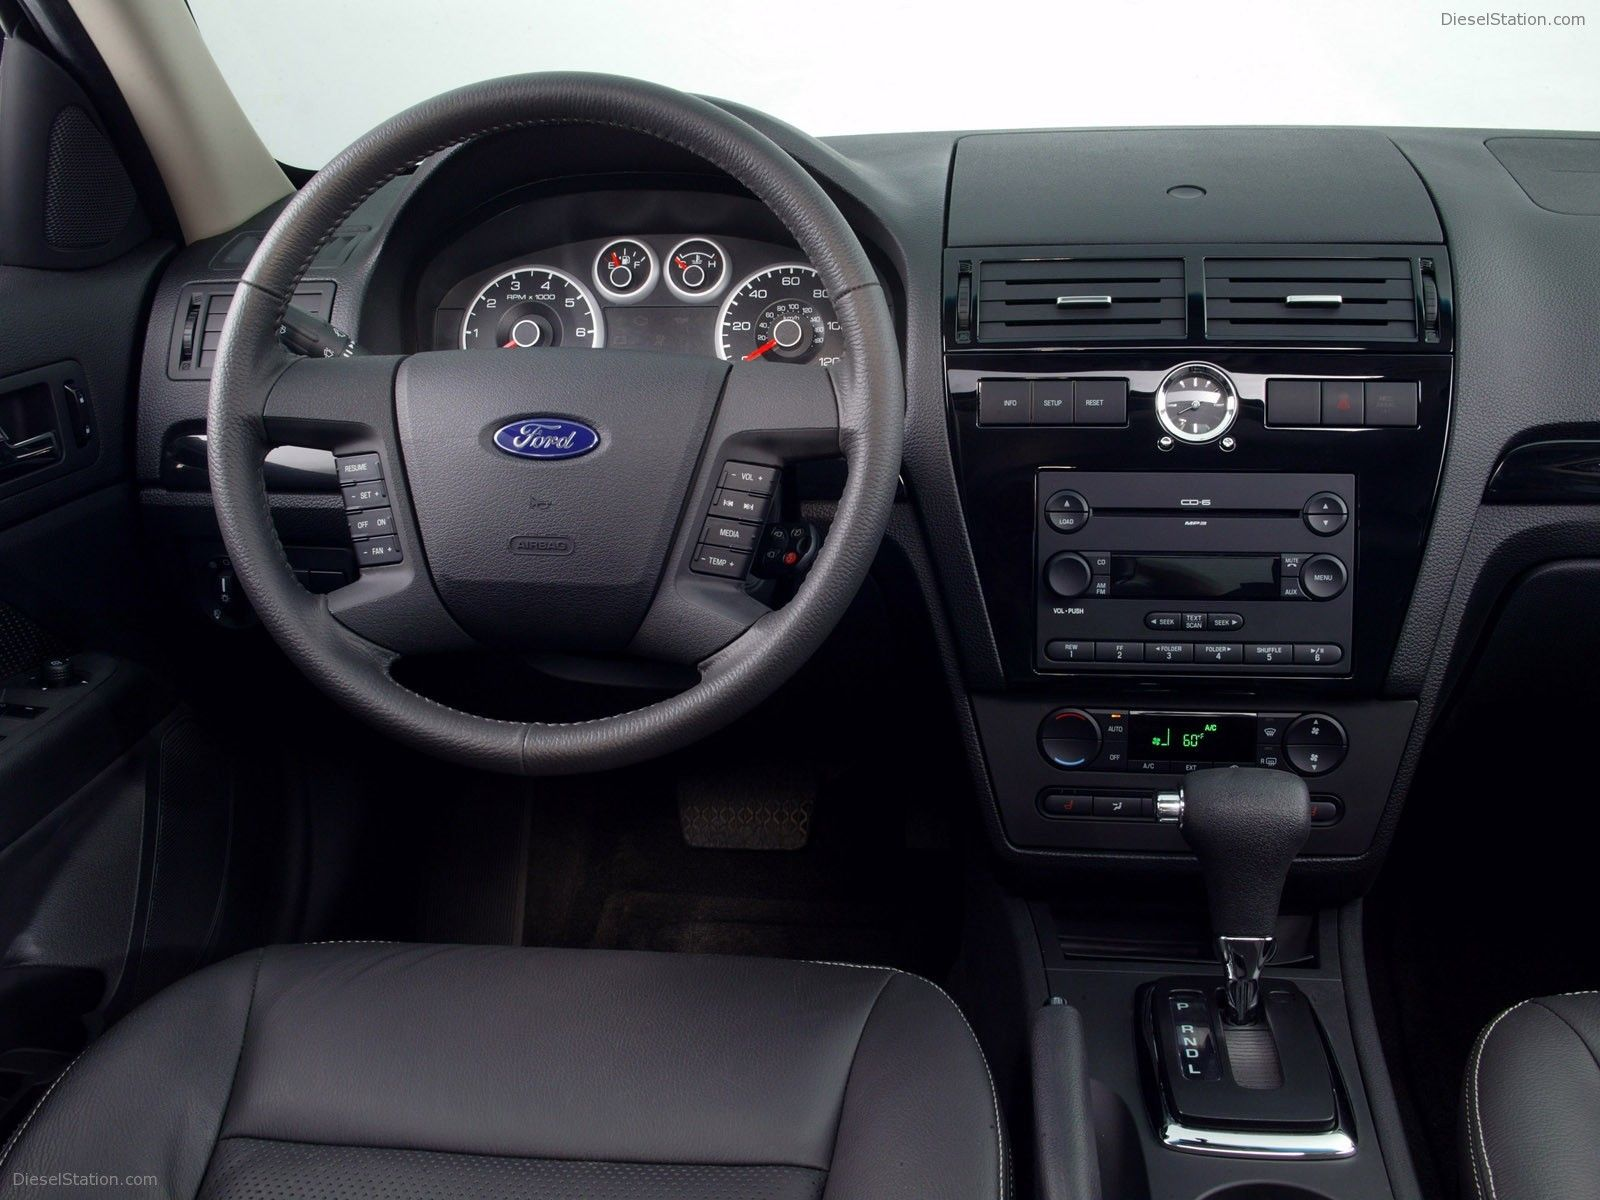 2008 ford fusion pc exotic car of diesel